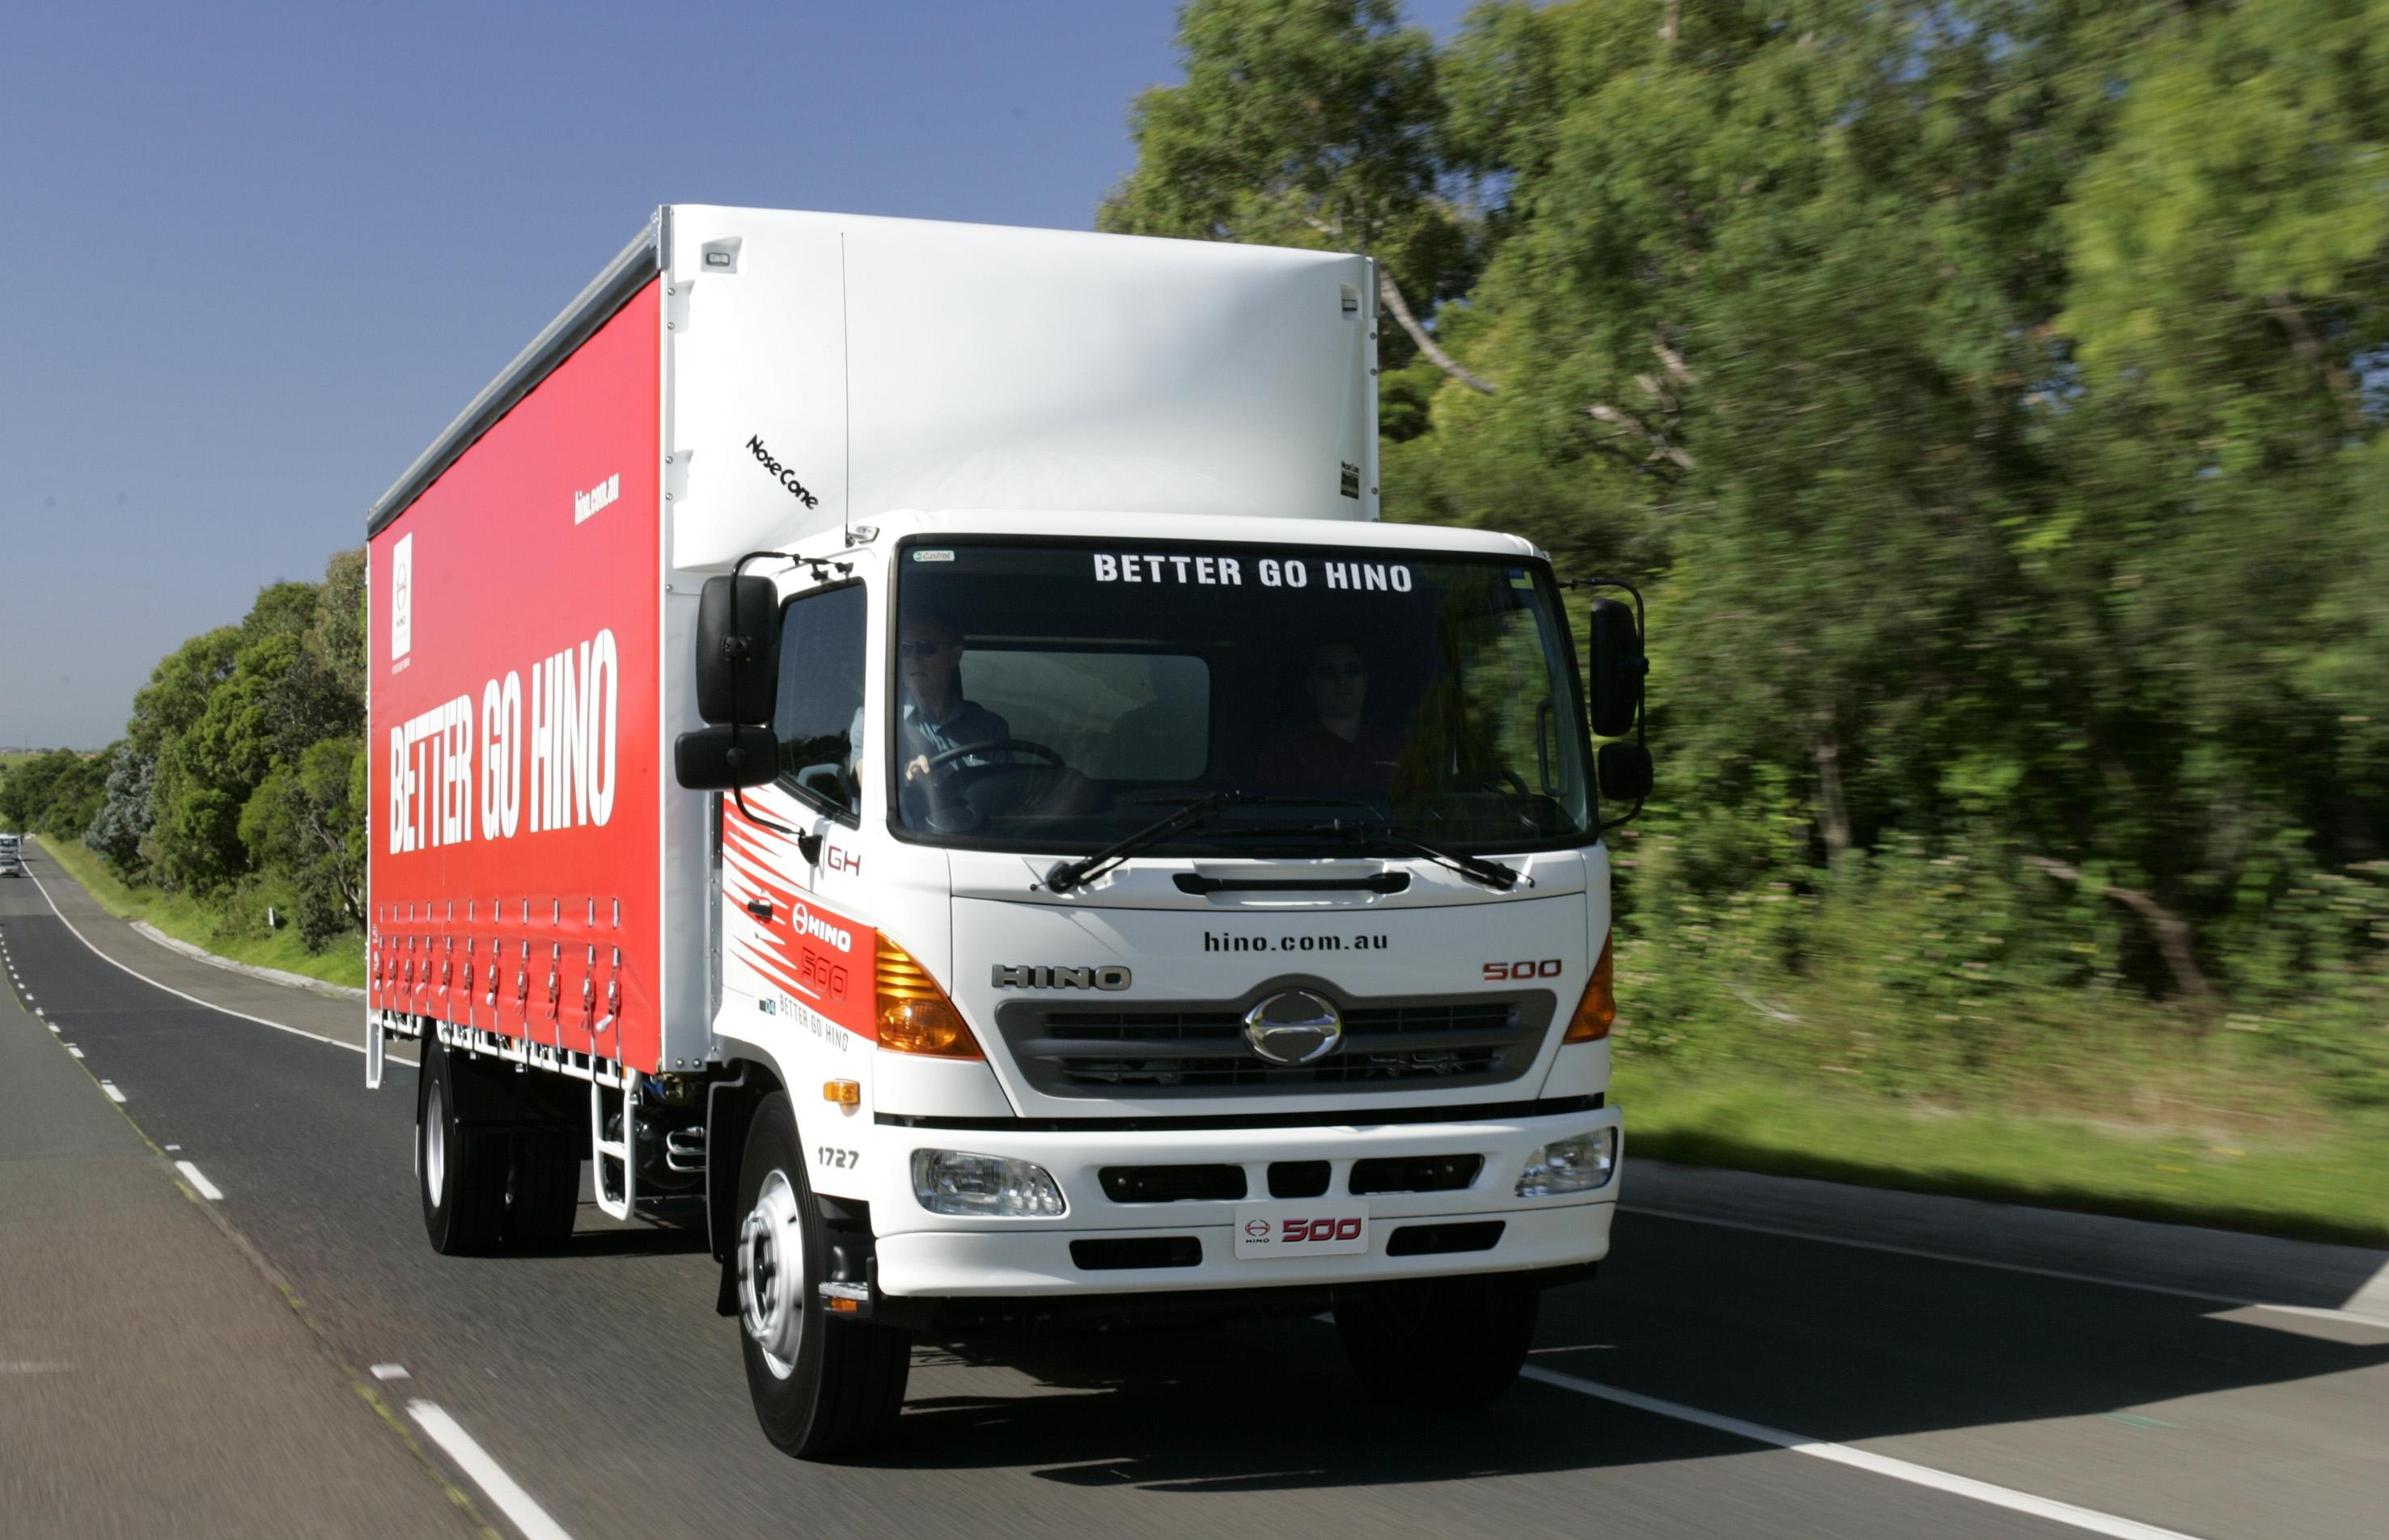 Httpsownerdriverindustry news1312truck and dogs 7938g fandeluxe Gallery